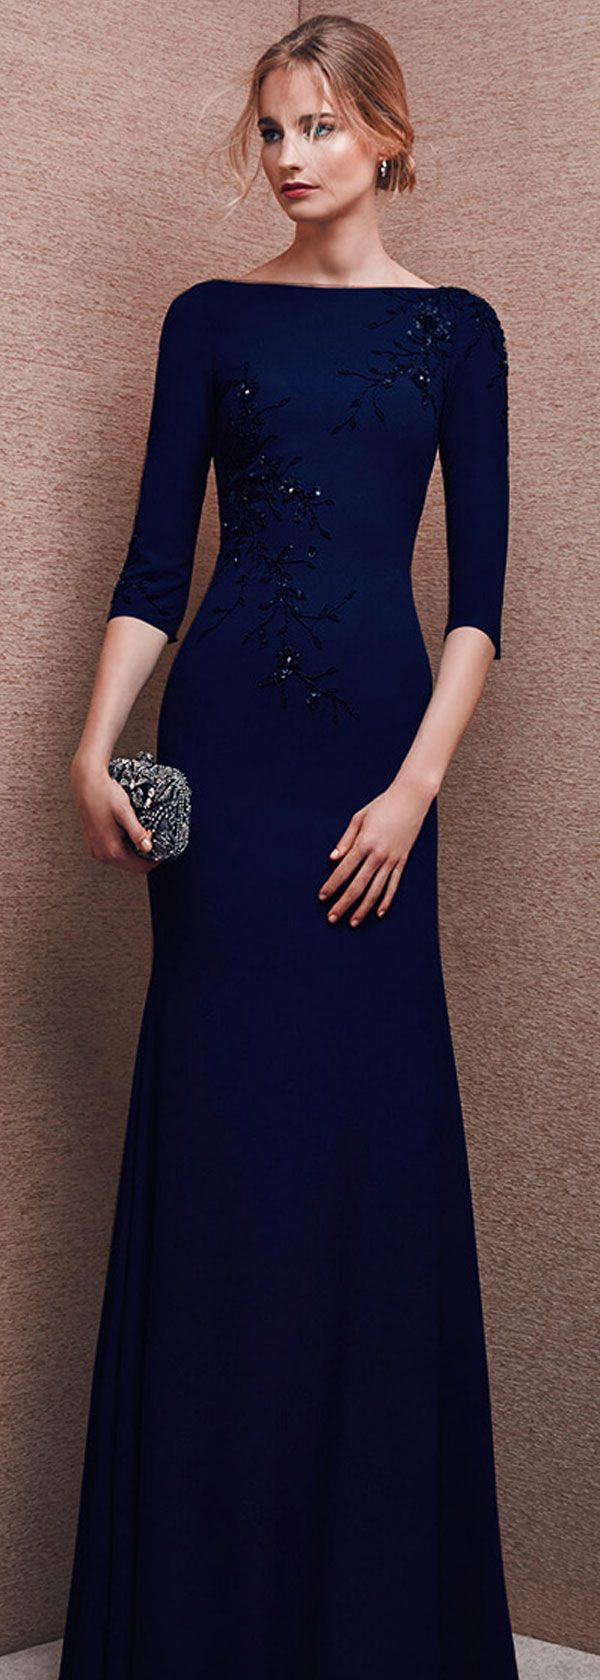 Marvelous Chiffon Bateau Neckline Three-quarter Length Sleeves Sheath Evening Dresses With Beadings